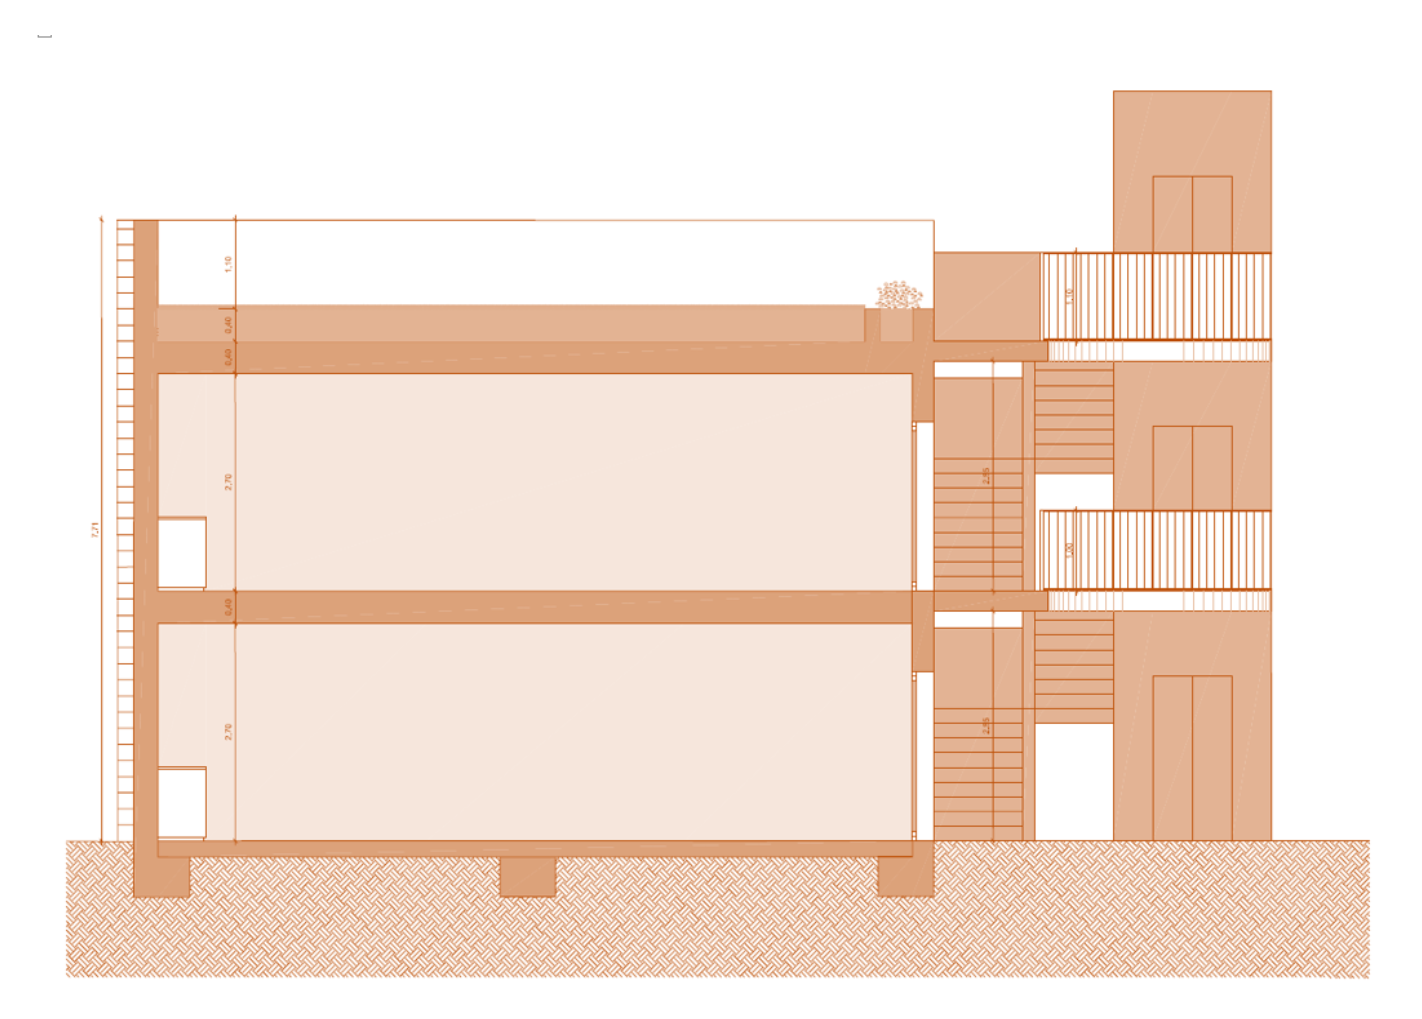 Architect´s plan of the secondary school building from the side